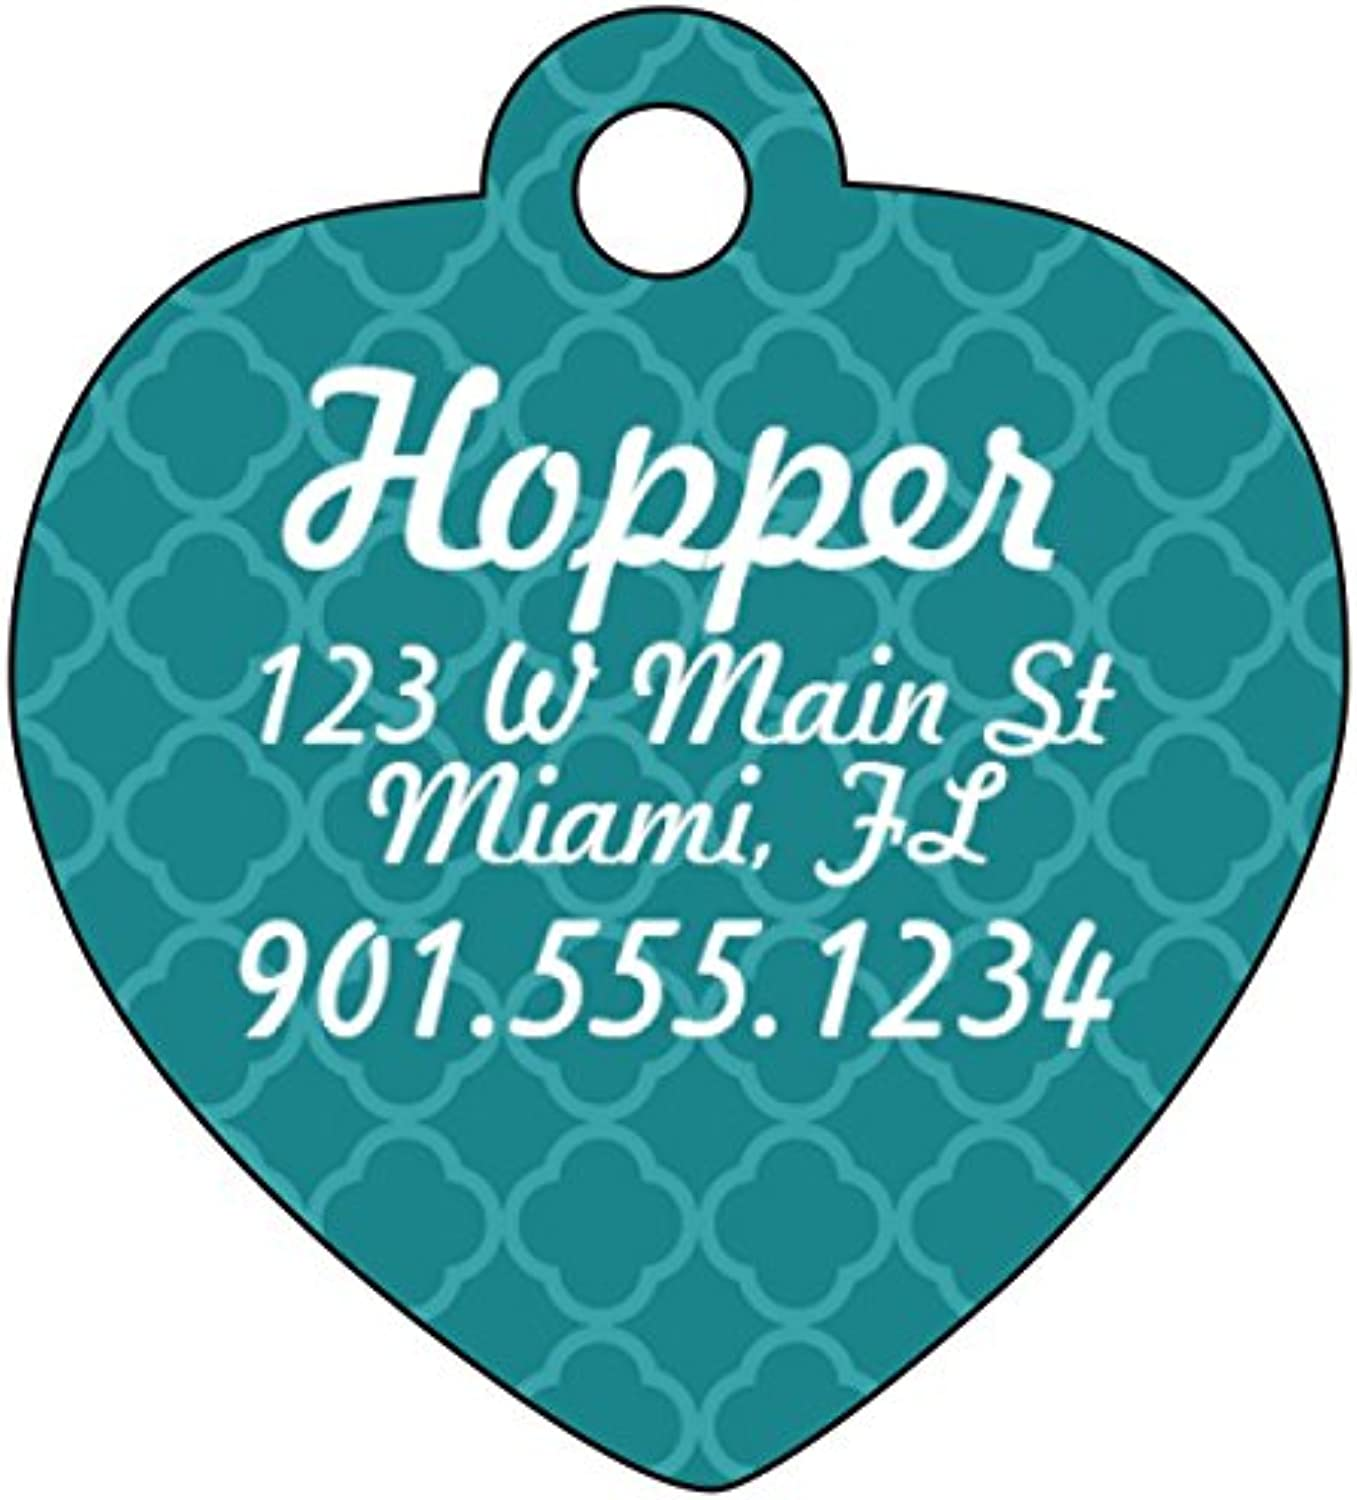 Dog Tag Cat Tag Pet ID Tag Personalized w  Name & Number & Address Heart Shaped (bluee)